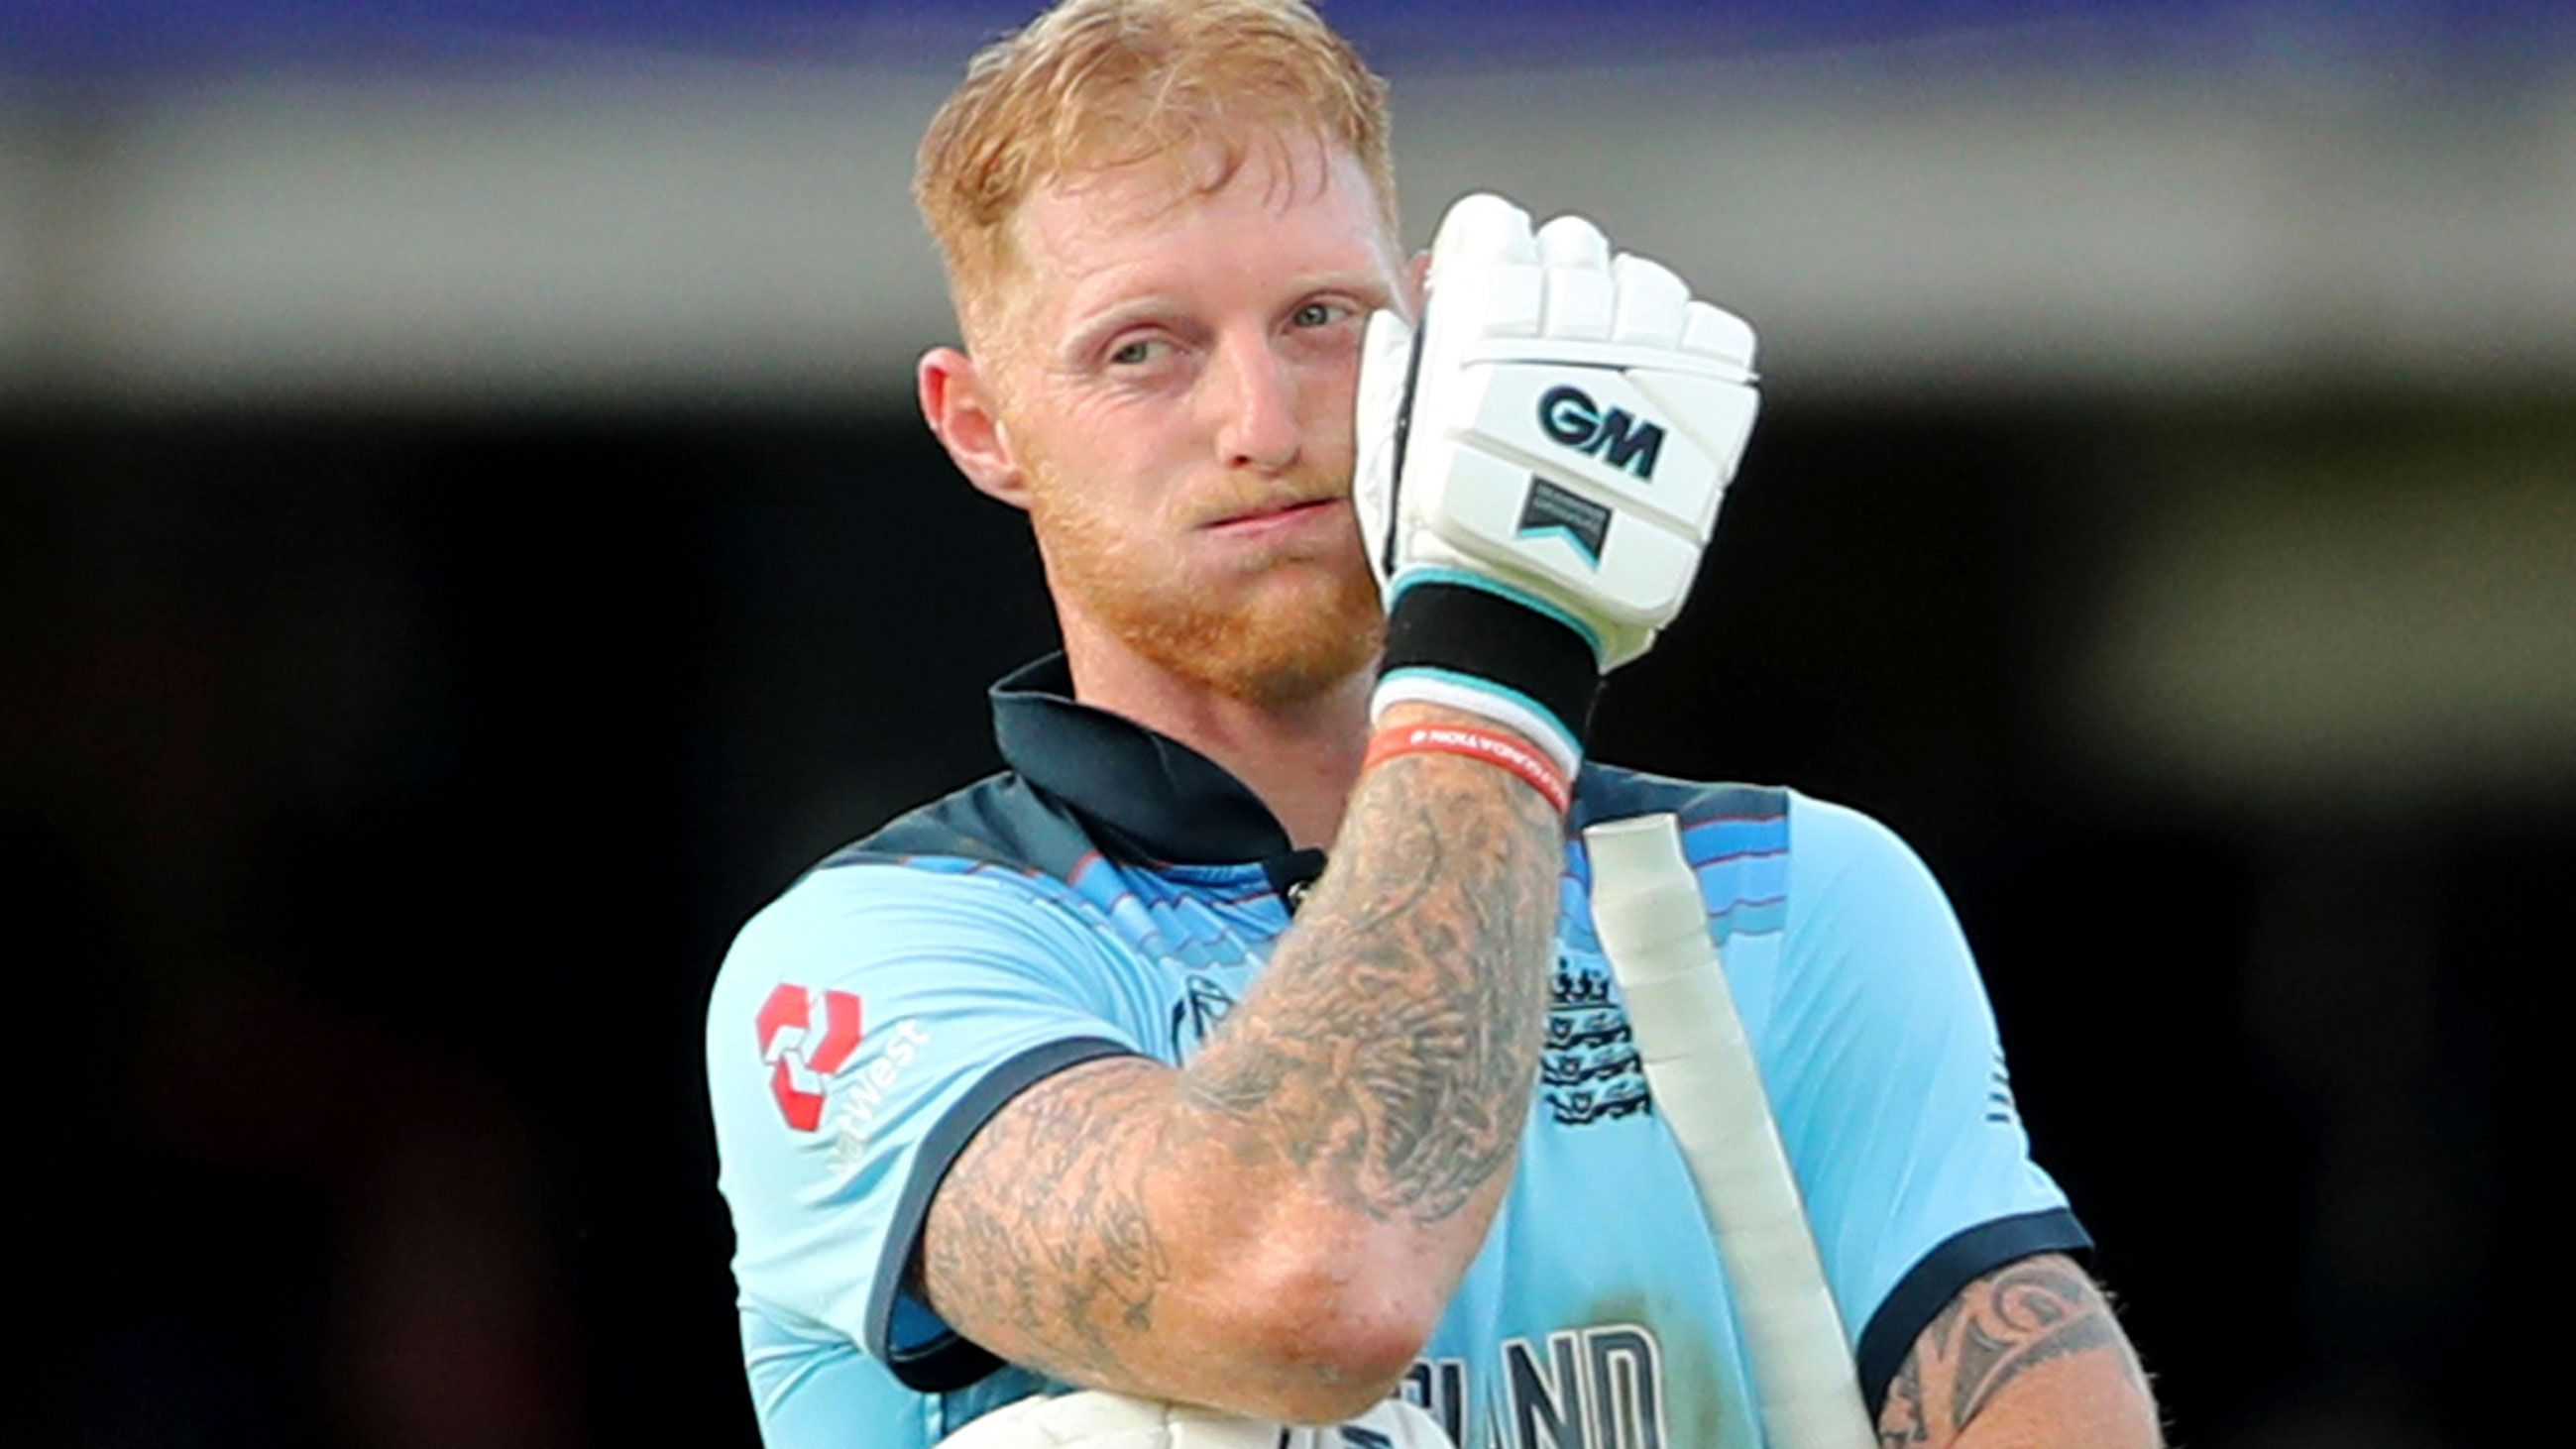 Ben Stokes credited with incredible moment of sportsmanship win World Cup final